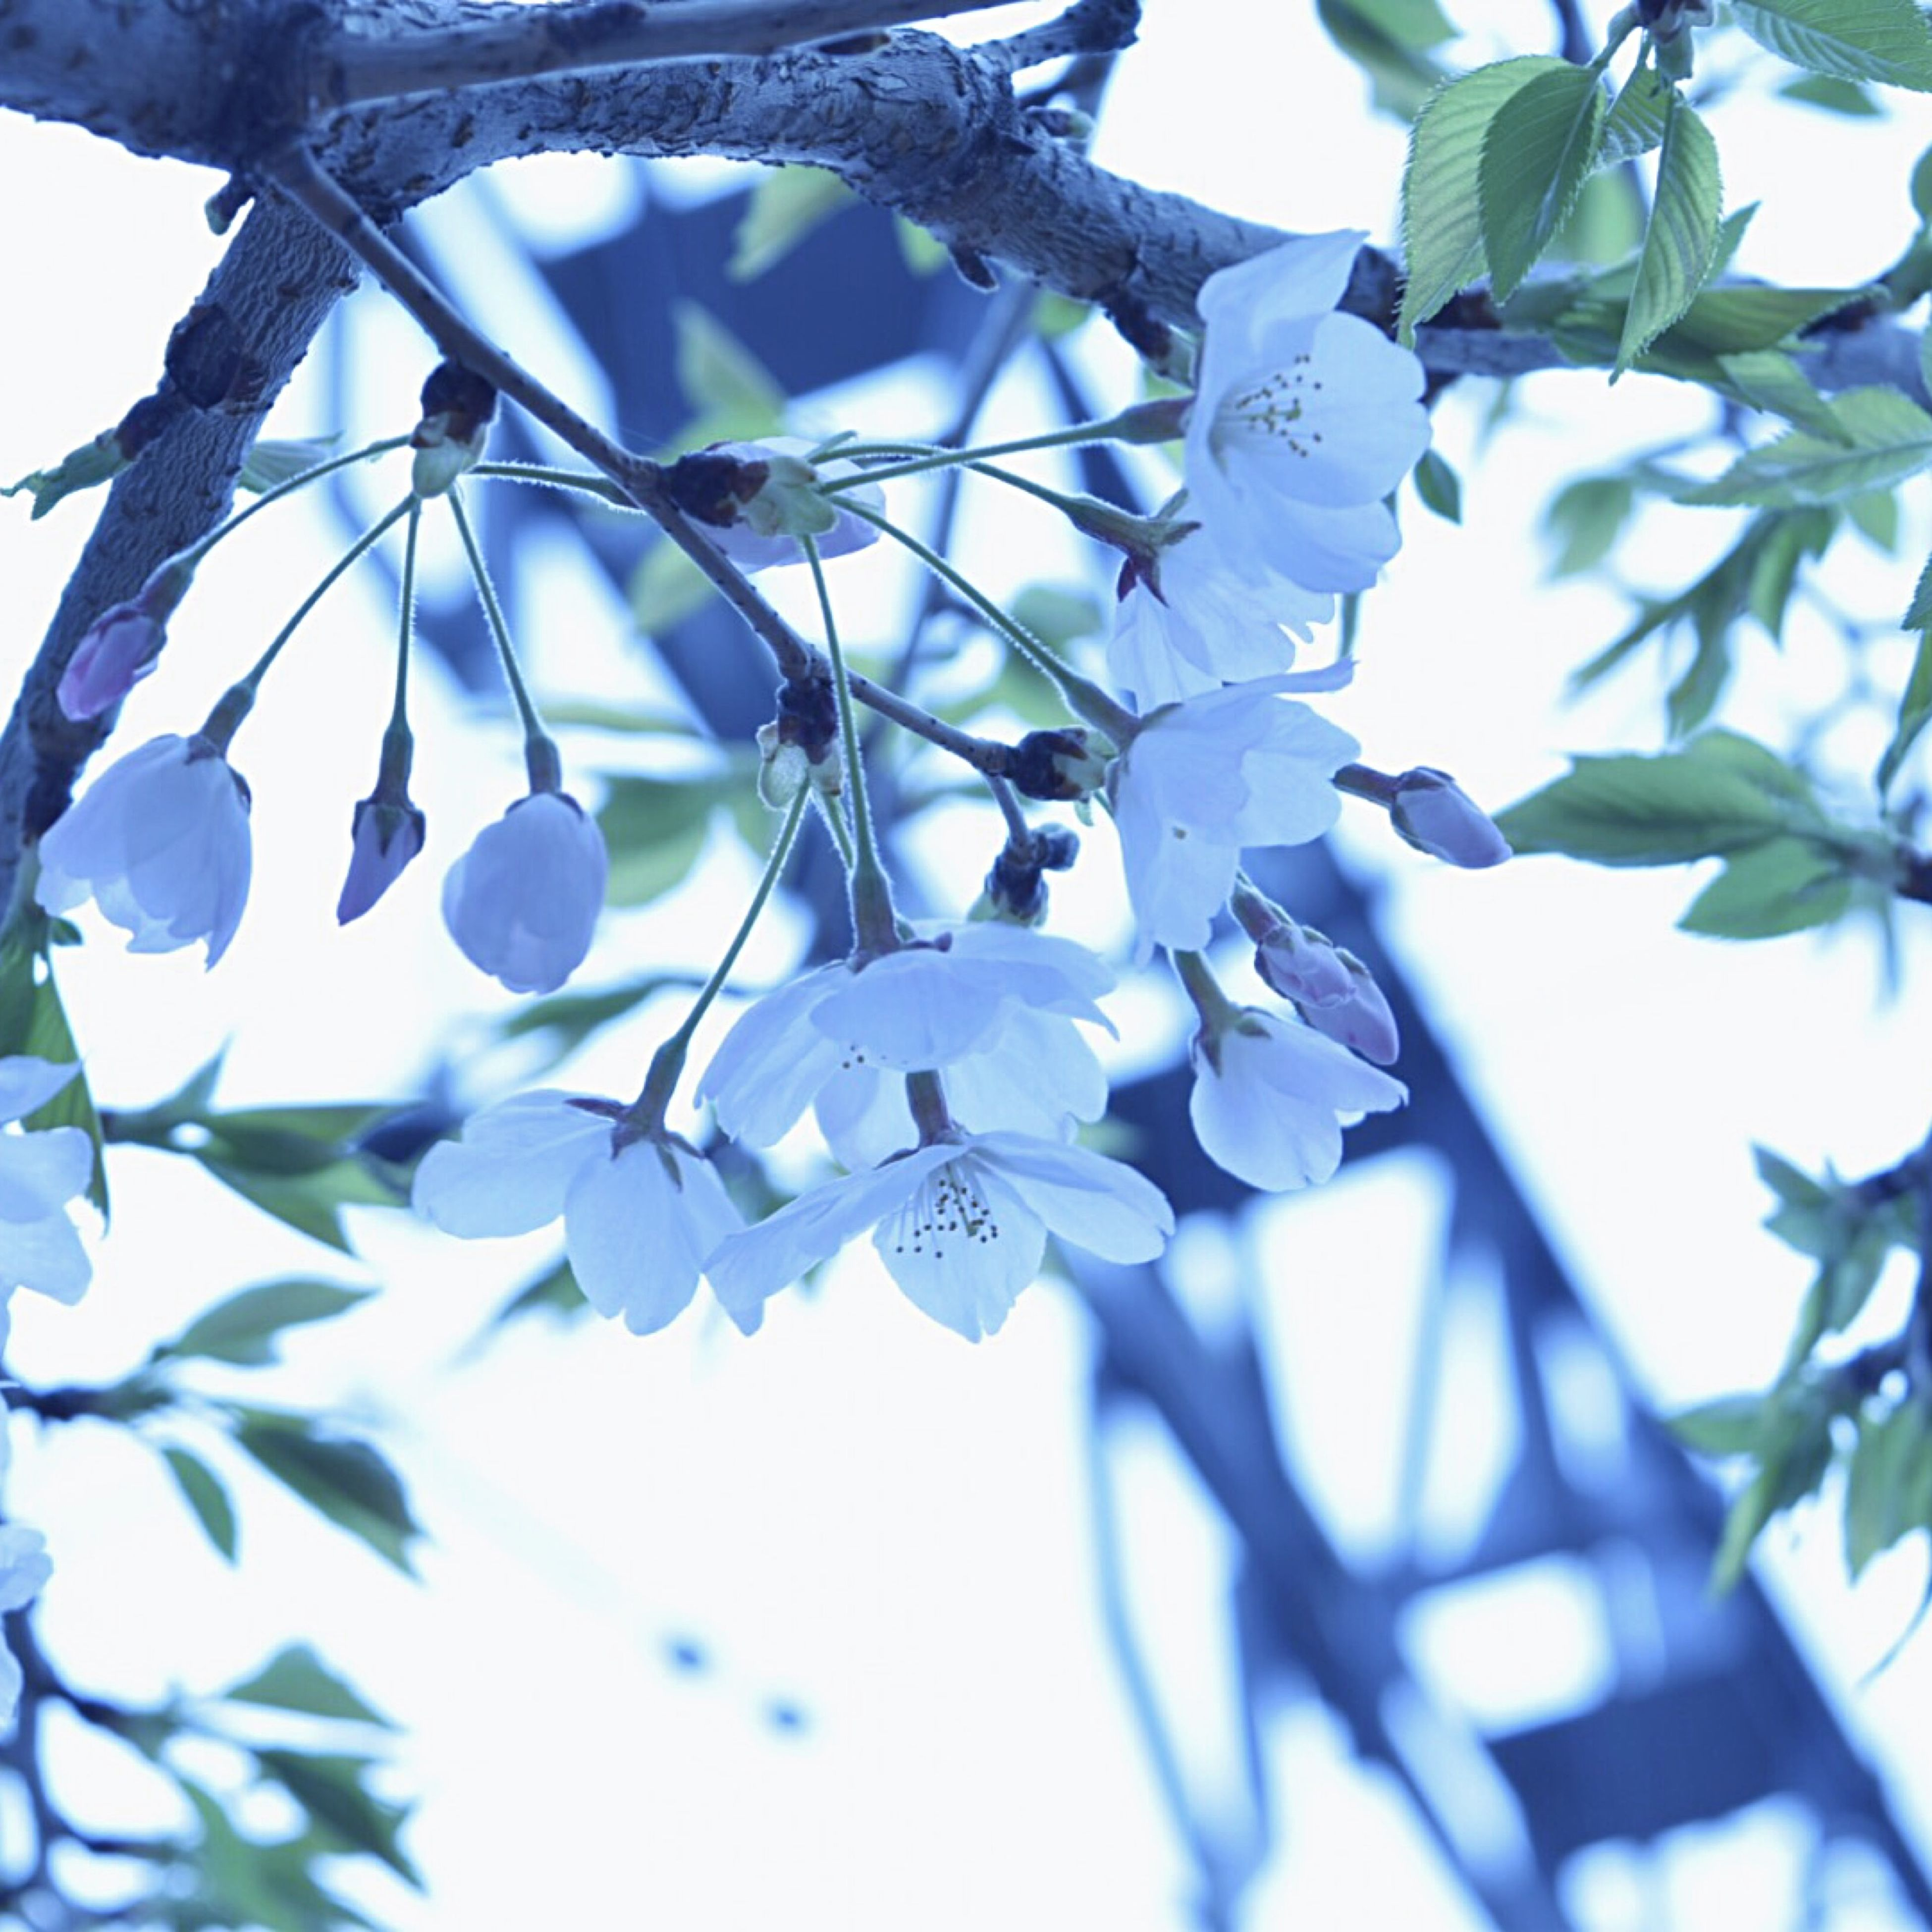 low angle view, branch, growth, leaf, tree, close-up, freshness, blue, nature, focus on foreground, sky, fragility, day, beauty in nature, clear sky, twig, outdoors, no people, selective focus, flower